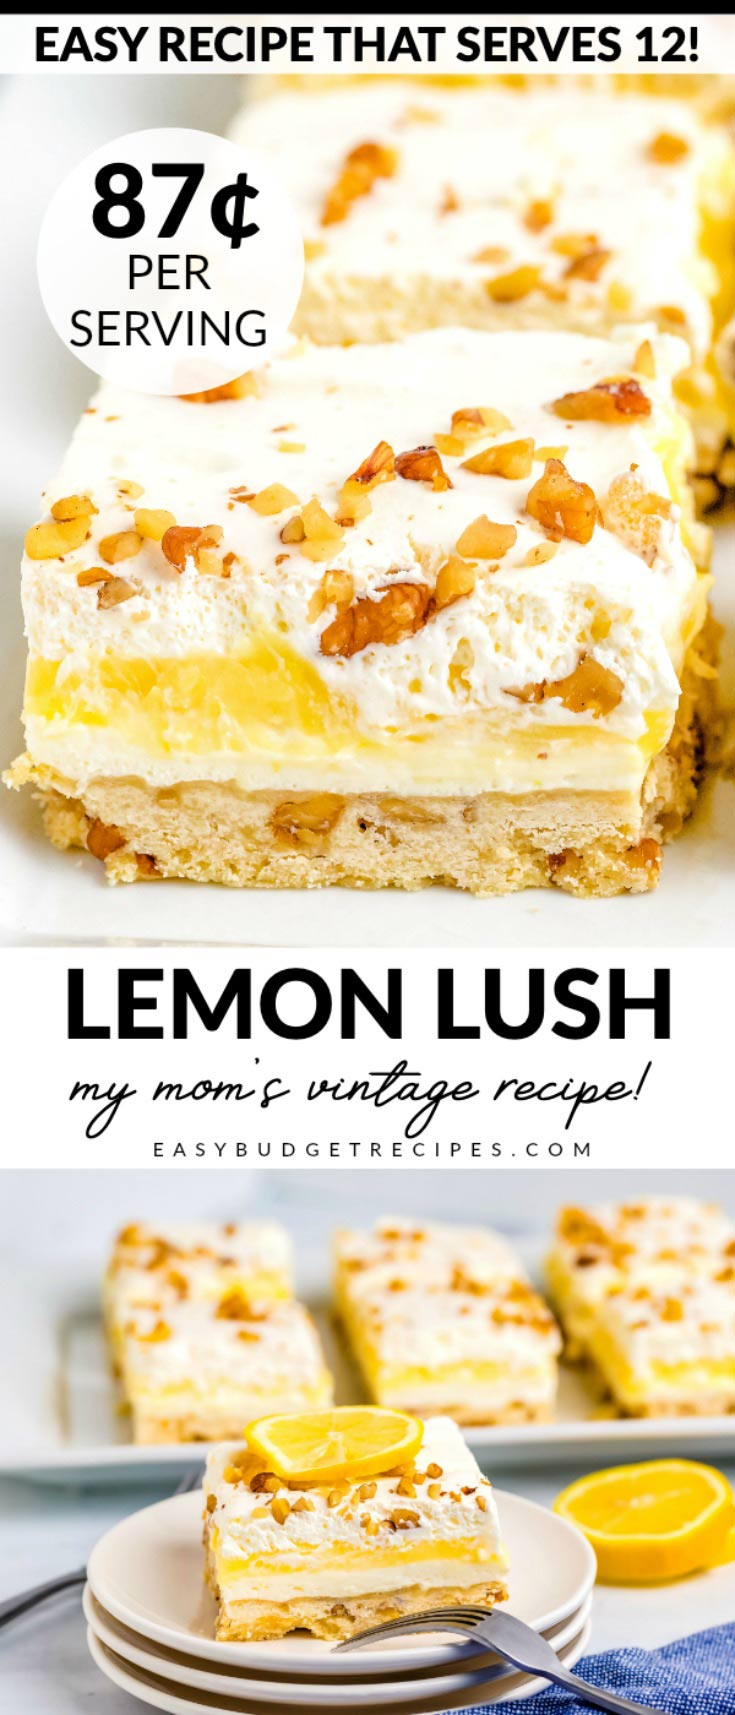 This Lemon Lush recipe is something my mom has been making for over 30 years because it's THAT GOOD! It serves 12 and costs $10.42 to make. That's just 87¢ per serving!  via @easybudgetrecipes